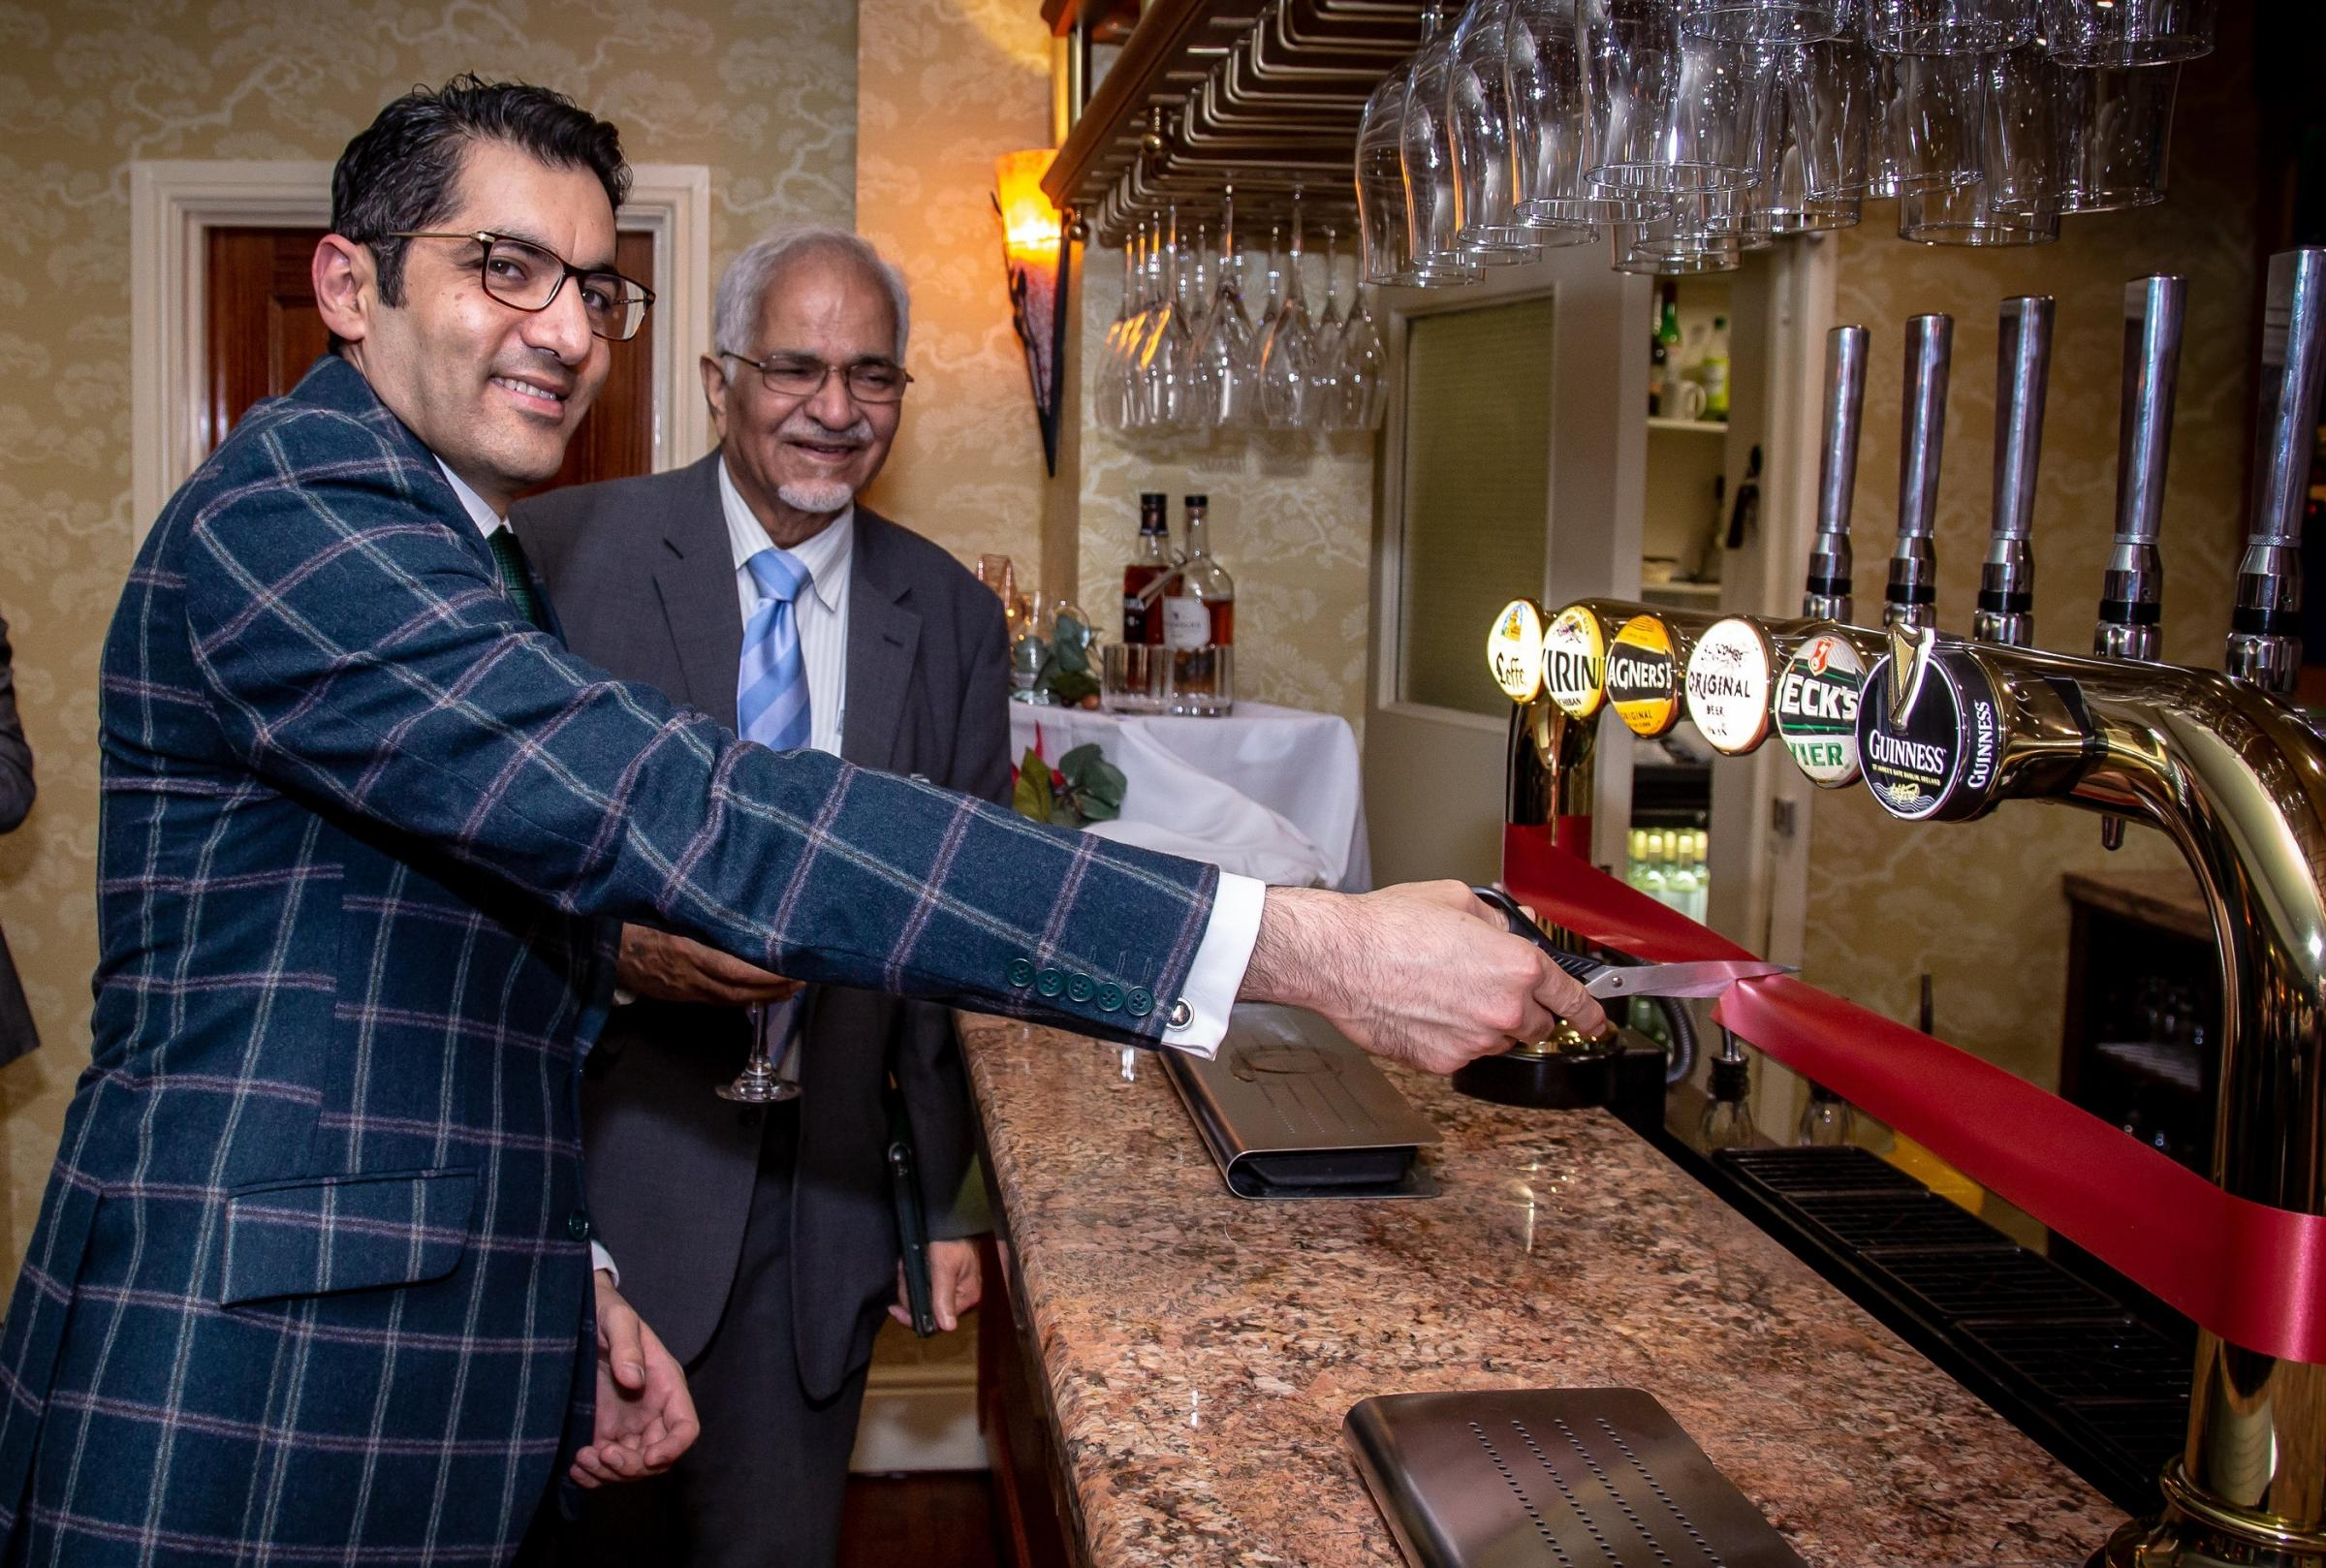 Dr Aman Puri and prof Nat Puri CBE cut the ribbon to officially open the new bar and restaurant in the Cricklade Hotel